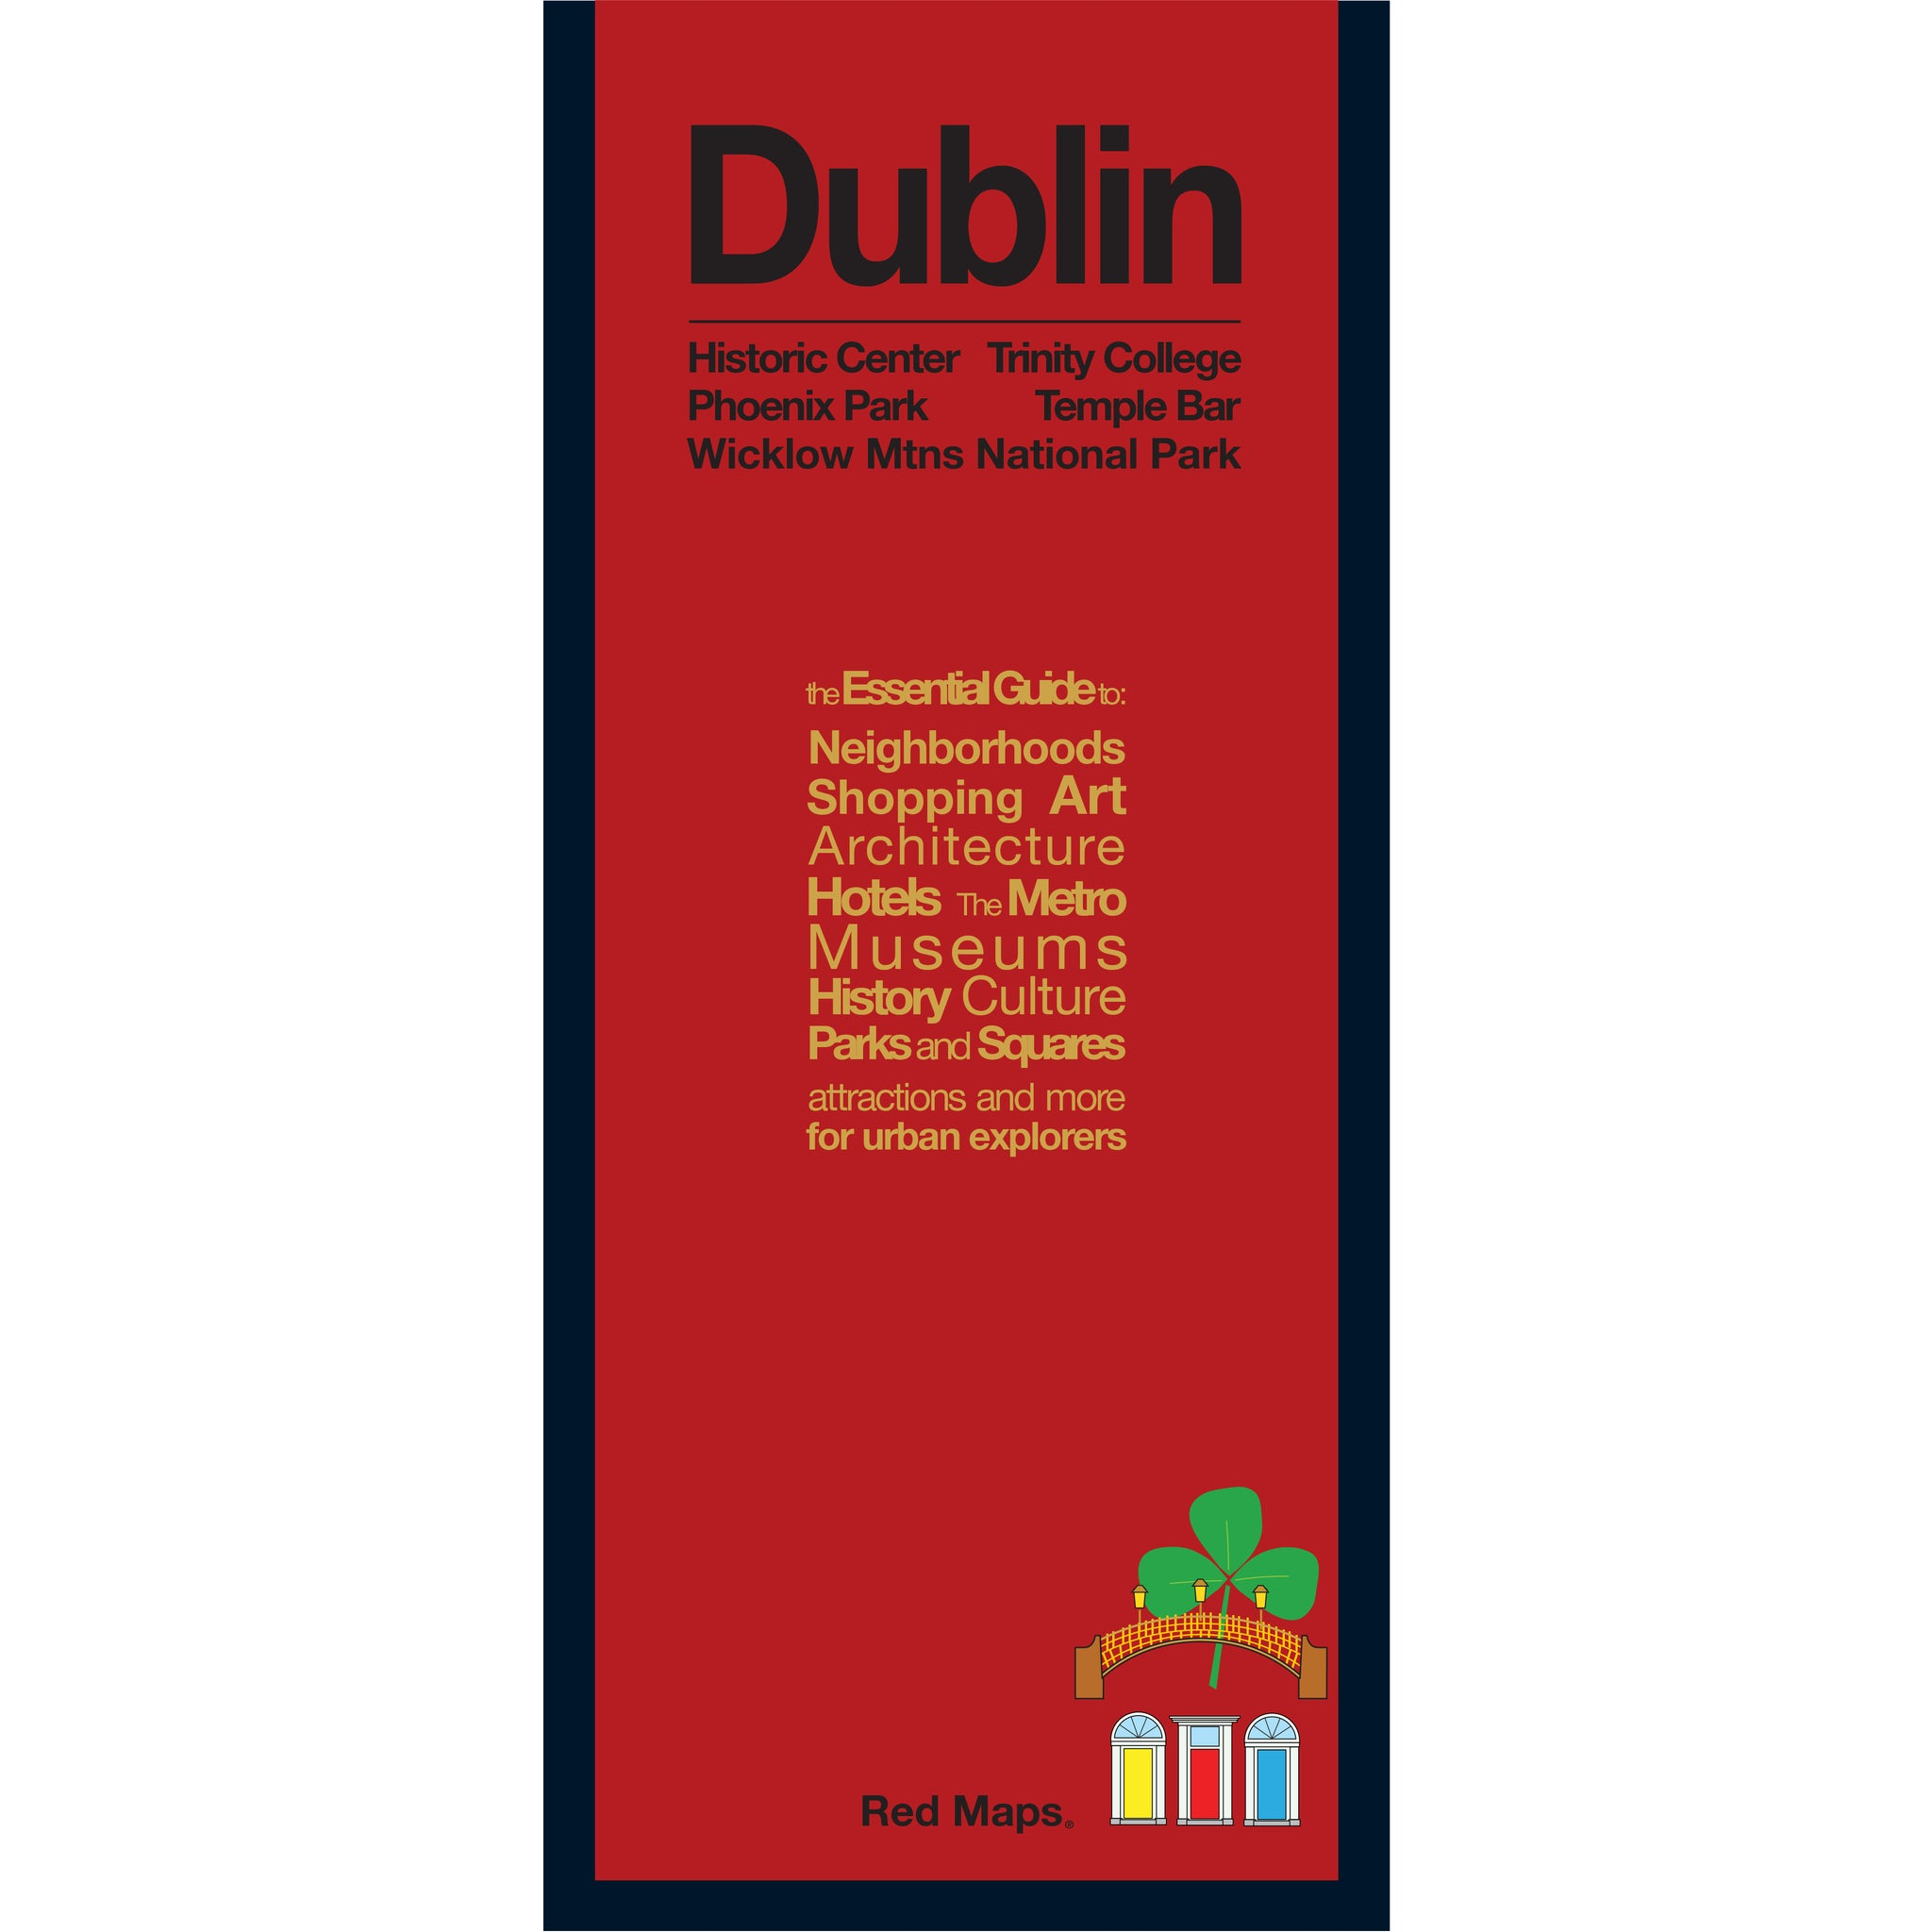 foldout map of Dublin Ireland with a red cover